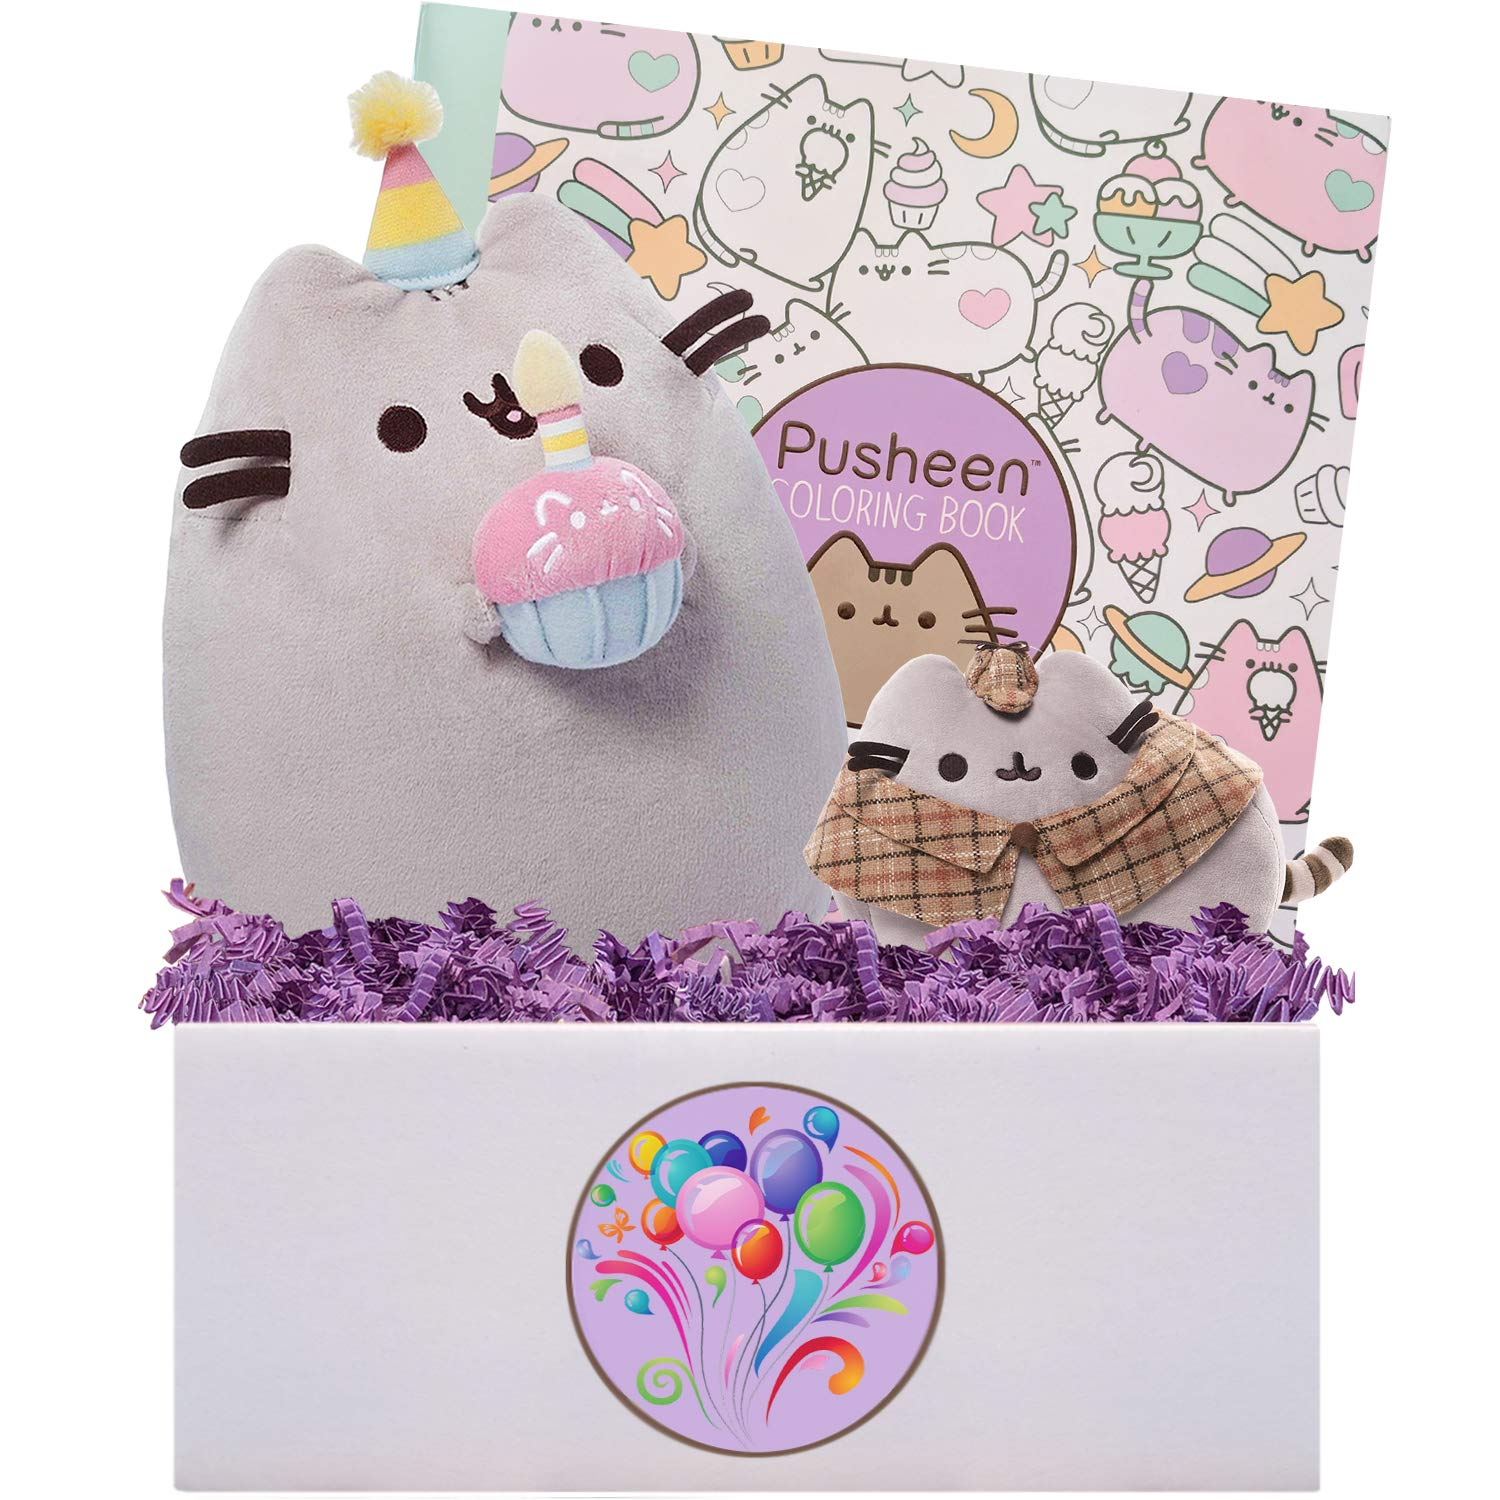 Blue Basil Gifts Pusheen Party Time Gift Box, 10 inches by Blue Basil Gifts